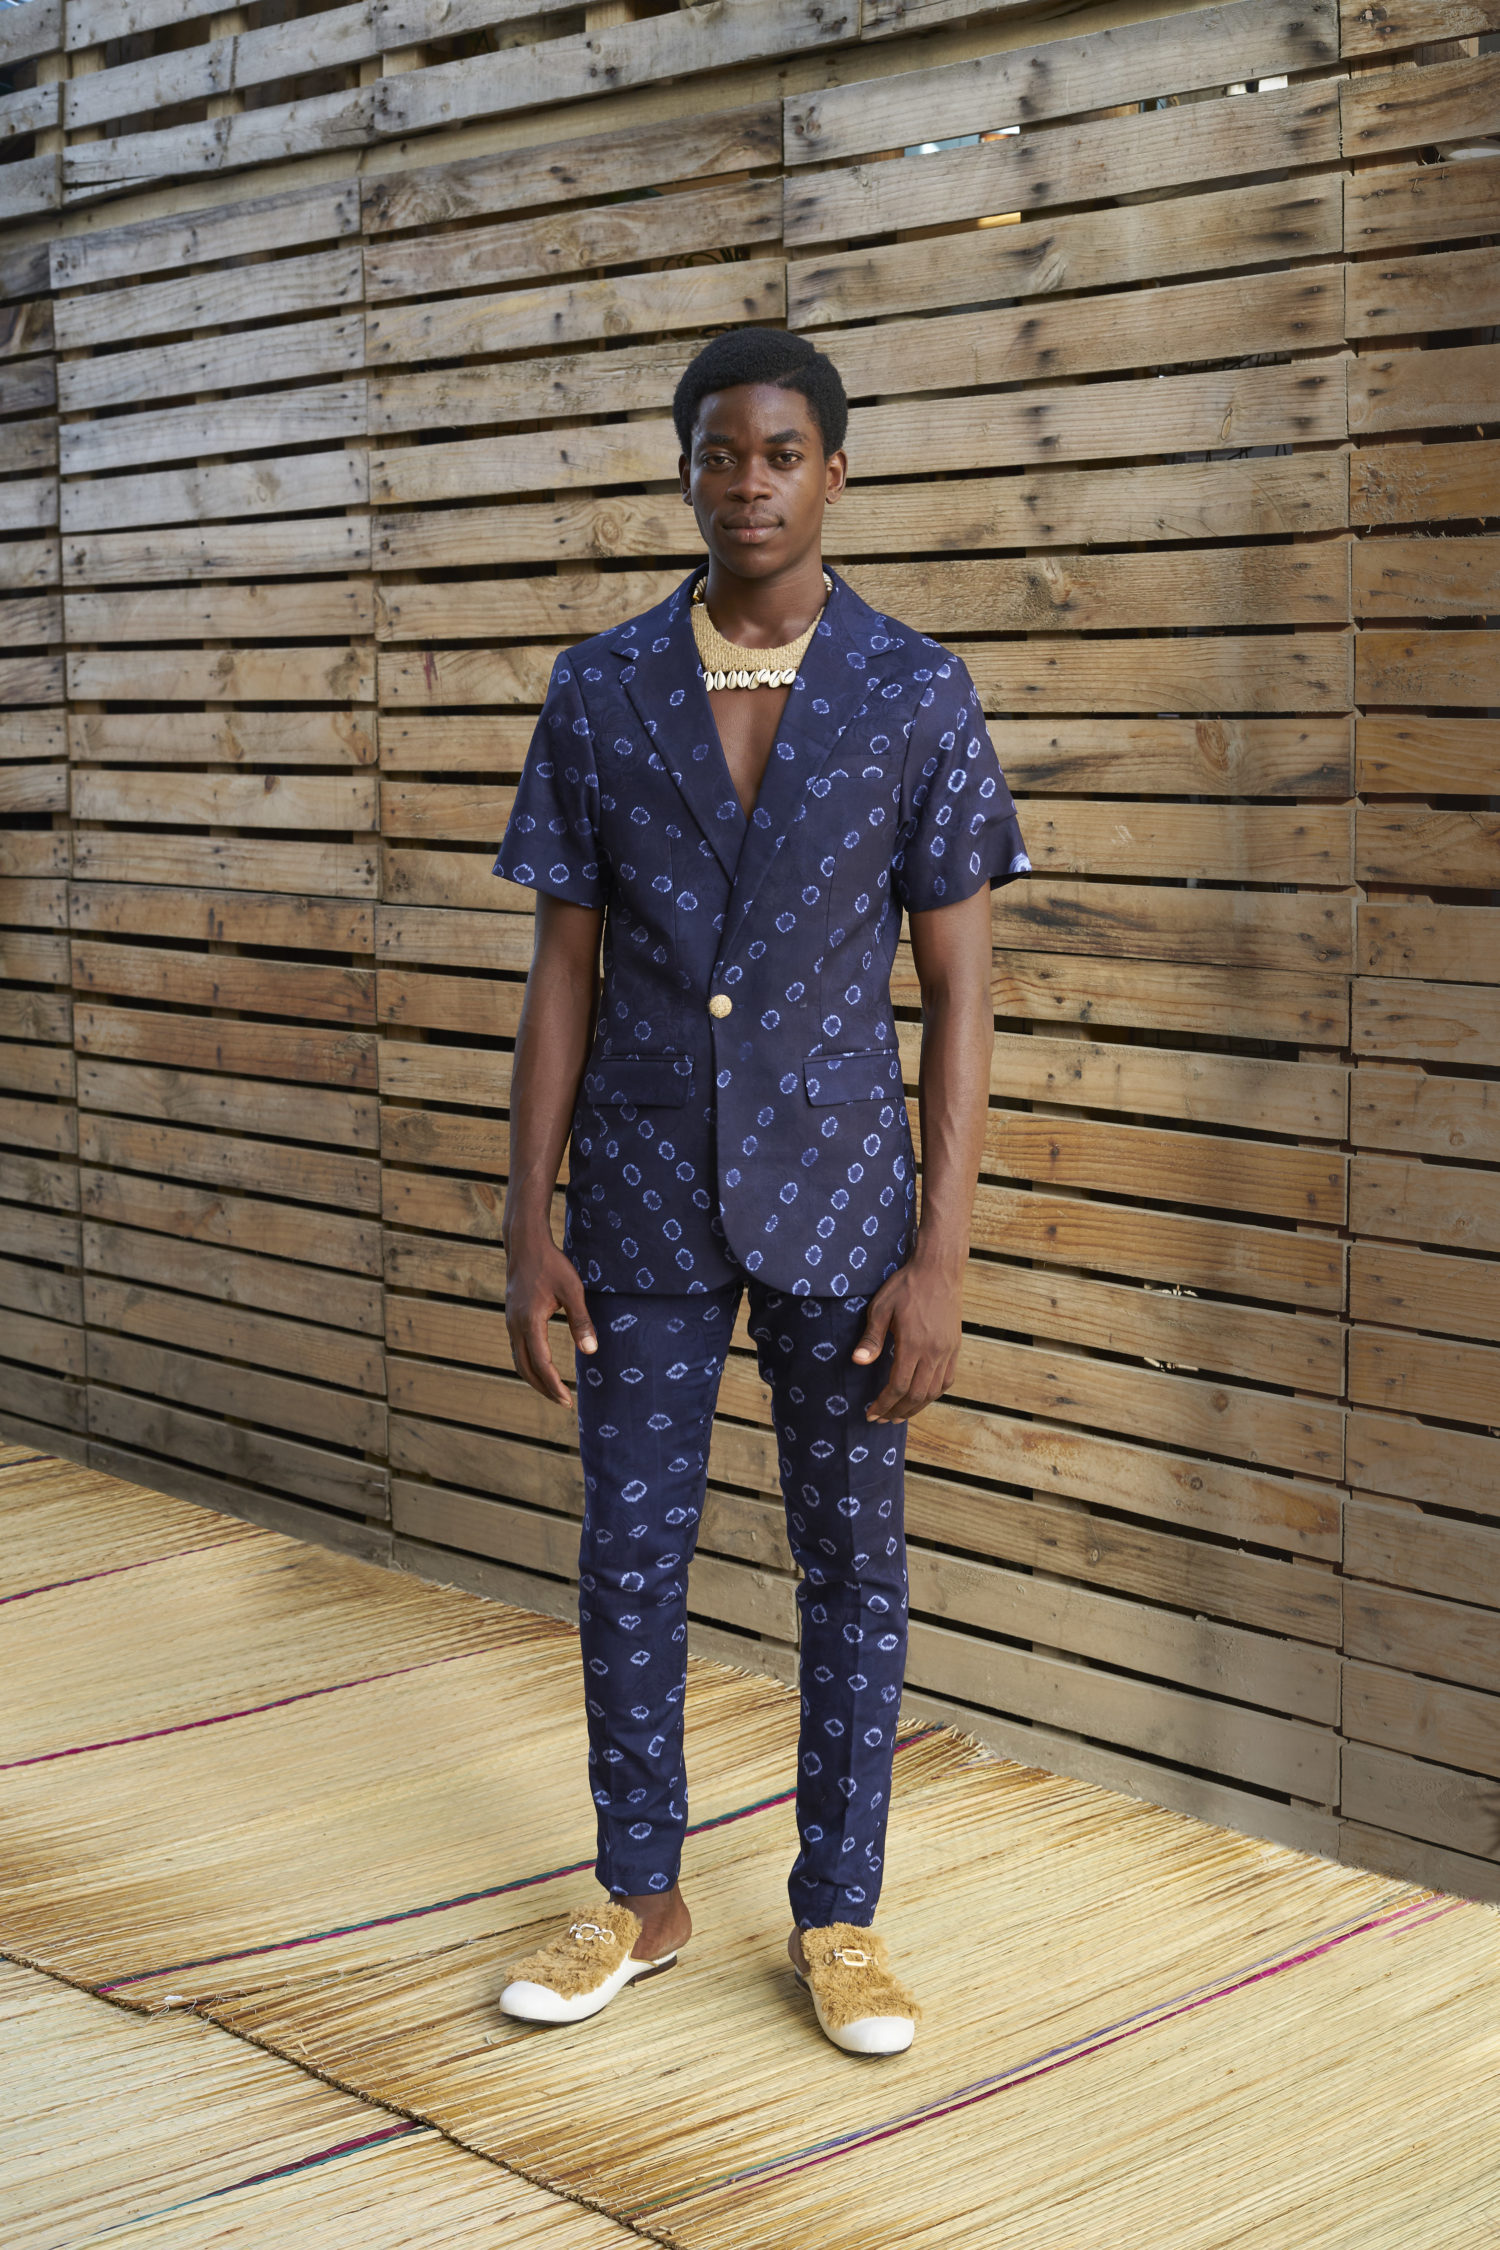 Not A Fan of Tie & Dye? Larry Jay's Autumn/Winter 2019 Collection Will Change Your Mind!